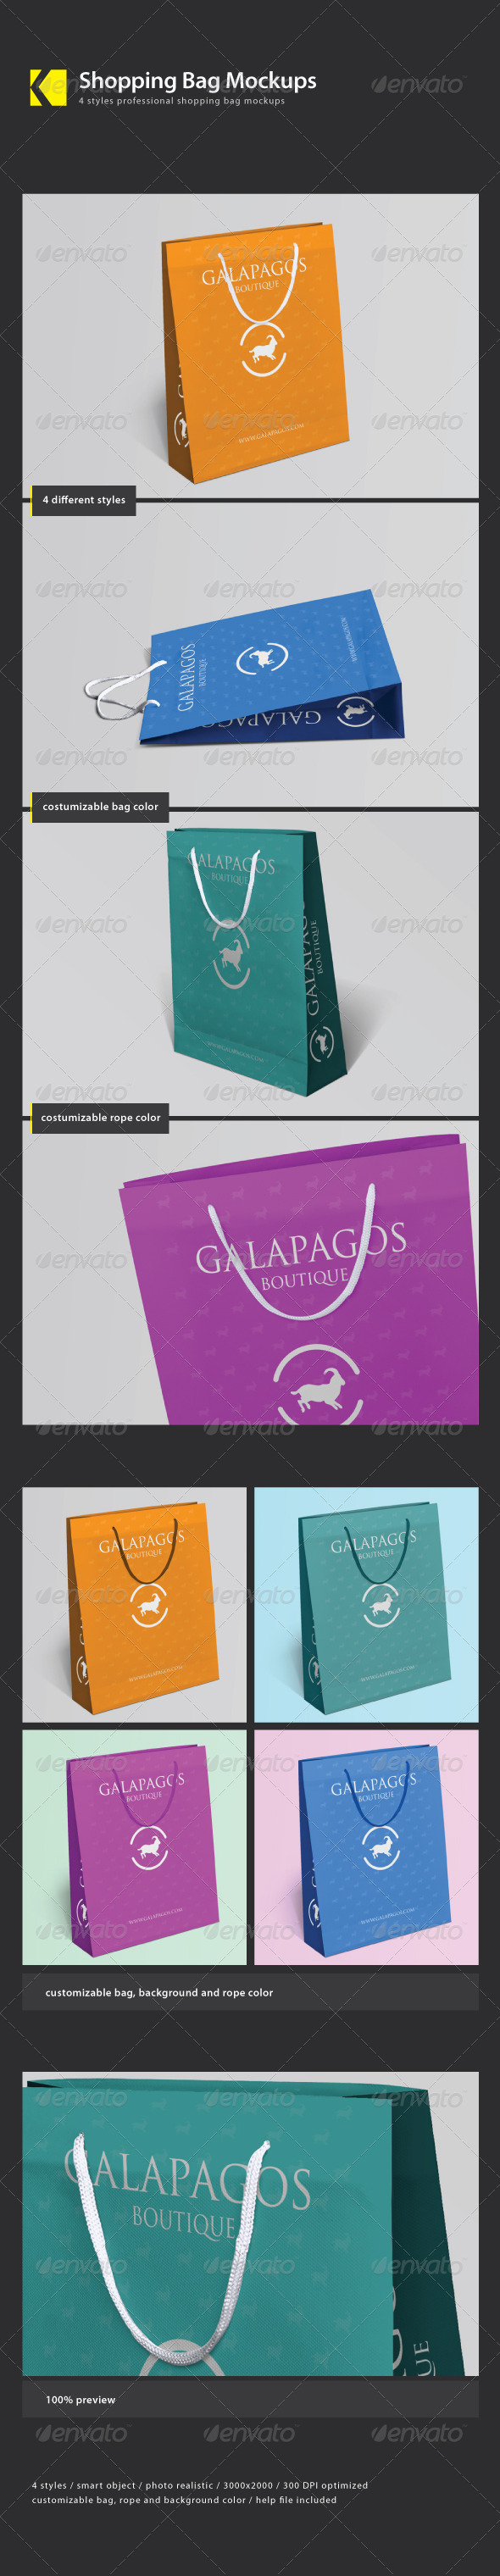 Shopping Bag Mockups - Beauty Packaging